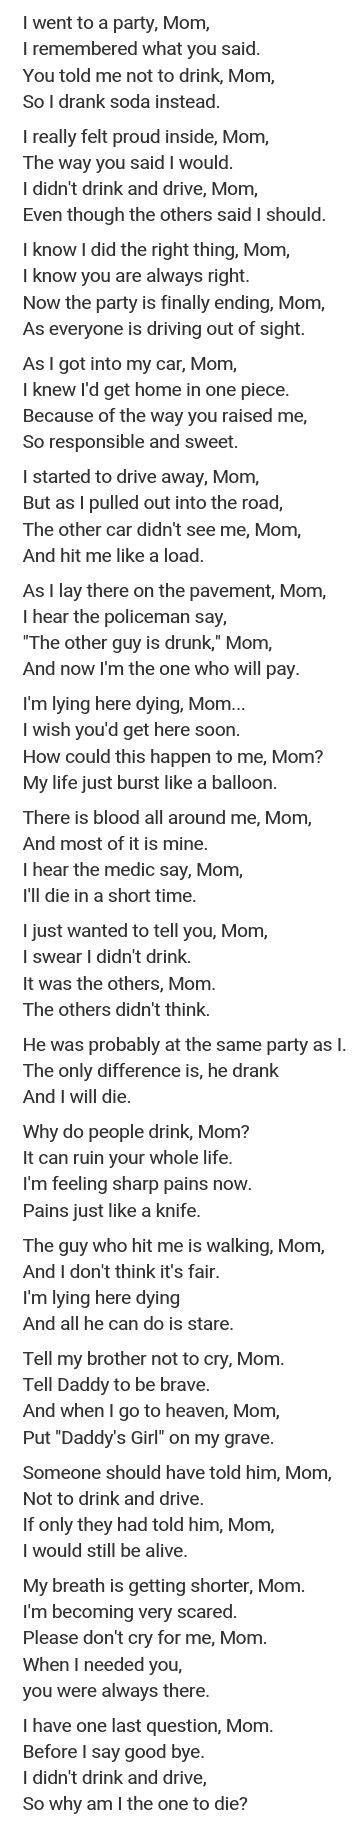 Please don't drink and drive..It's not fucking fair that the ones who don't drink suffer